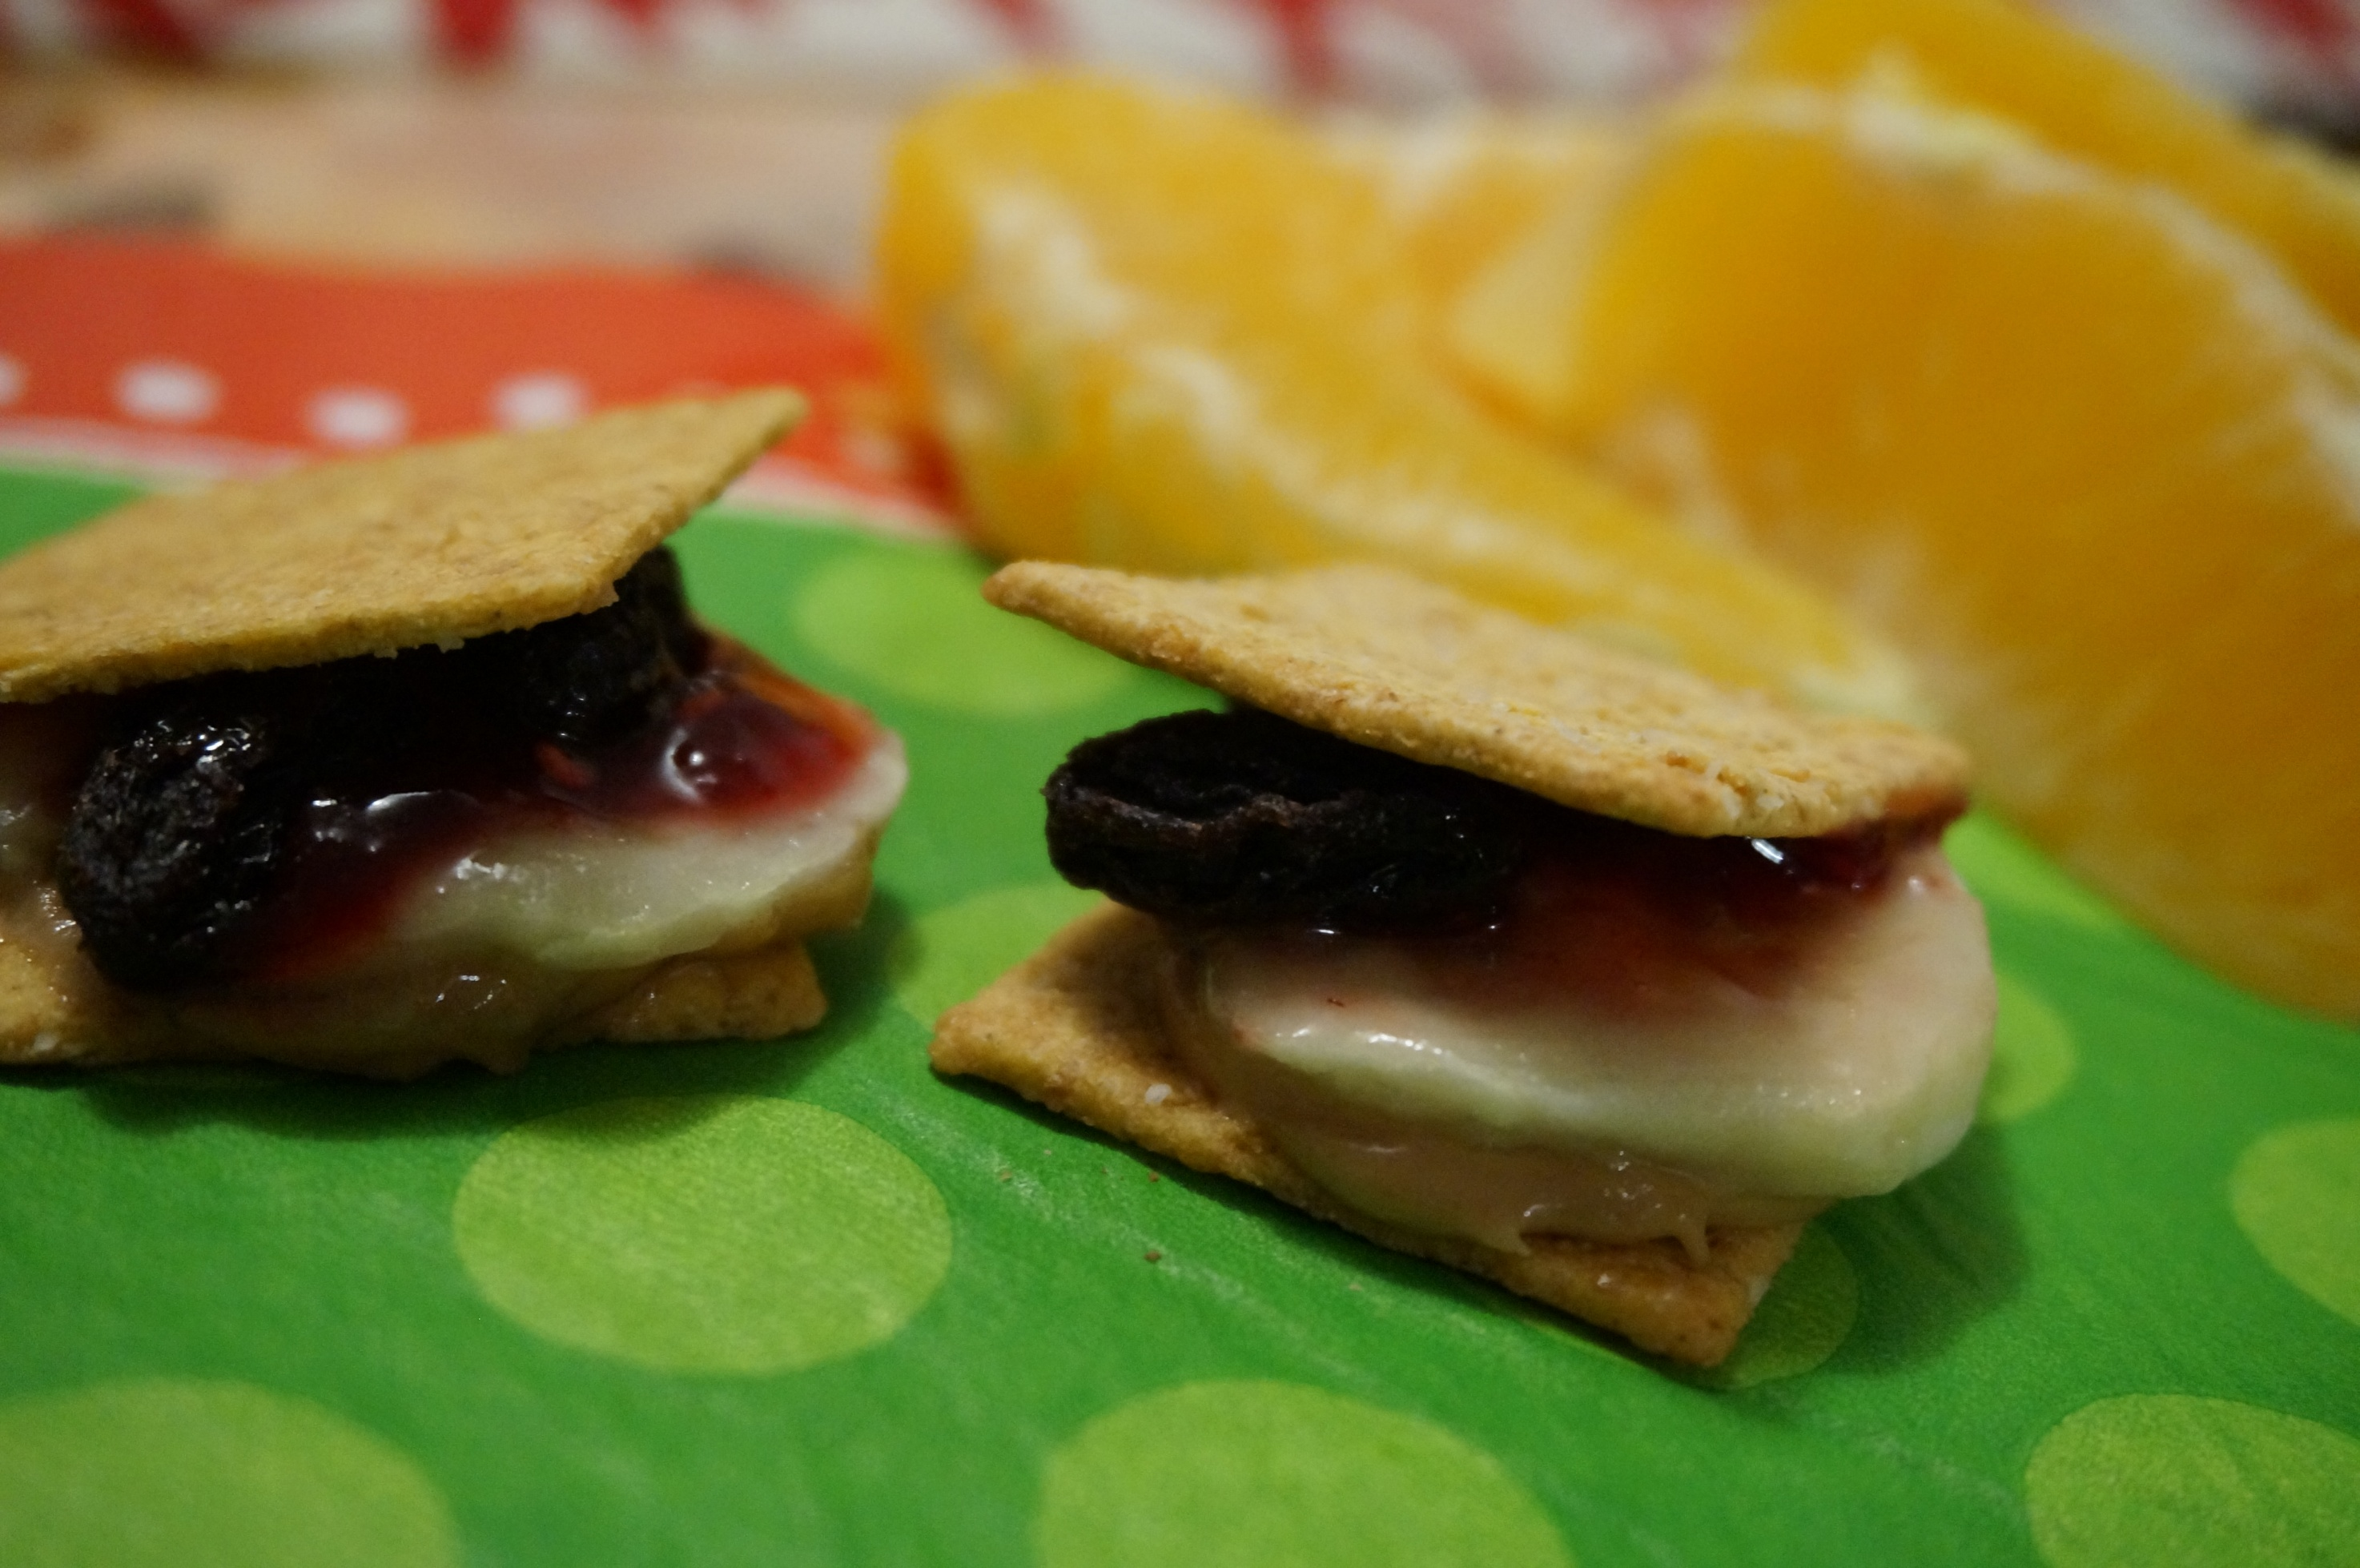 PBJ and banana bites